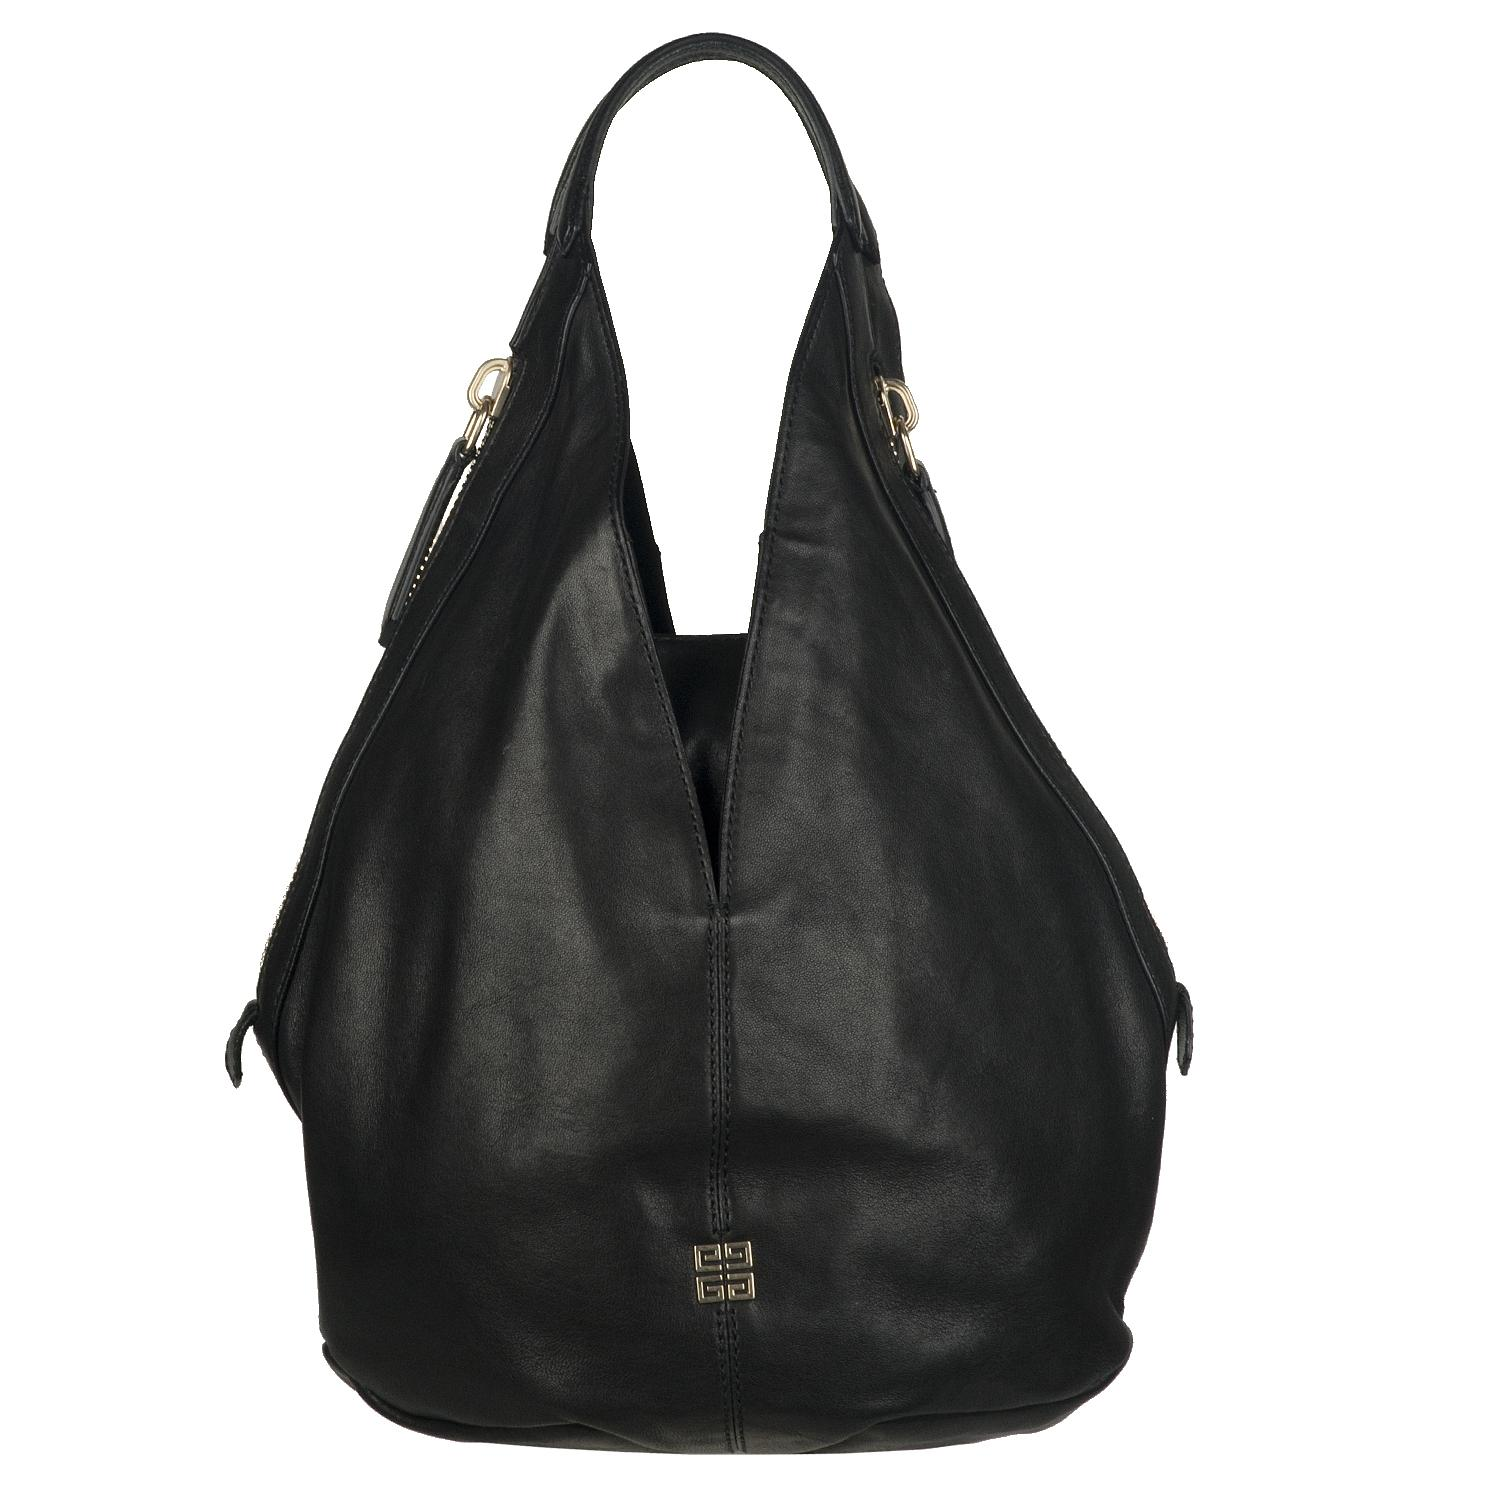 Givenchy Tinhan Small Black Leather Hobo Bag Free Shipping